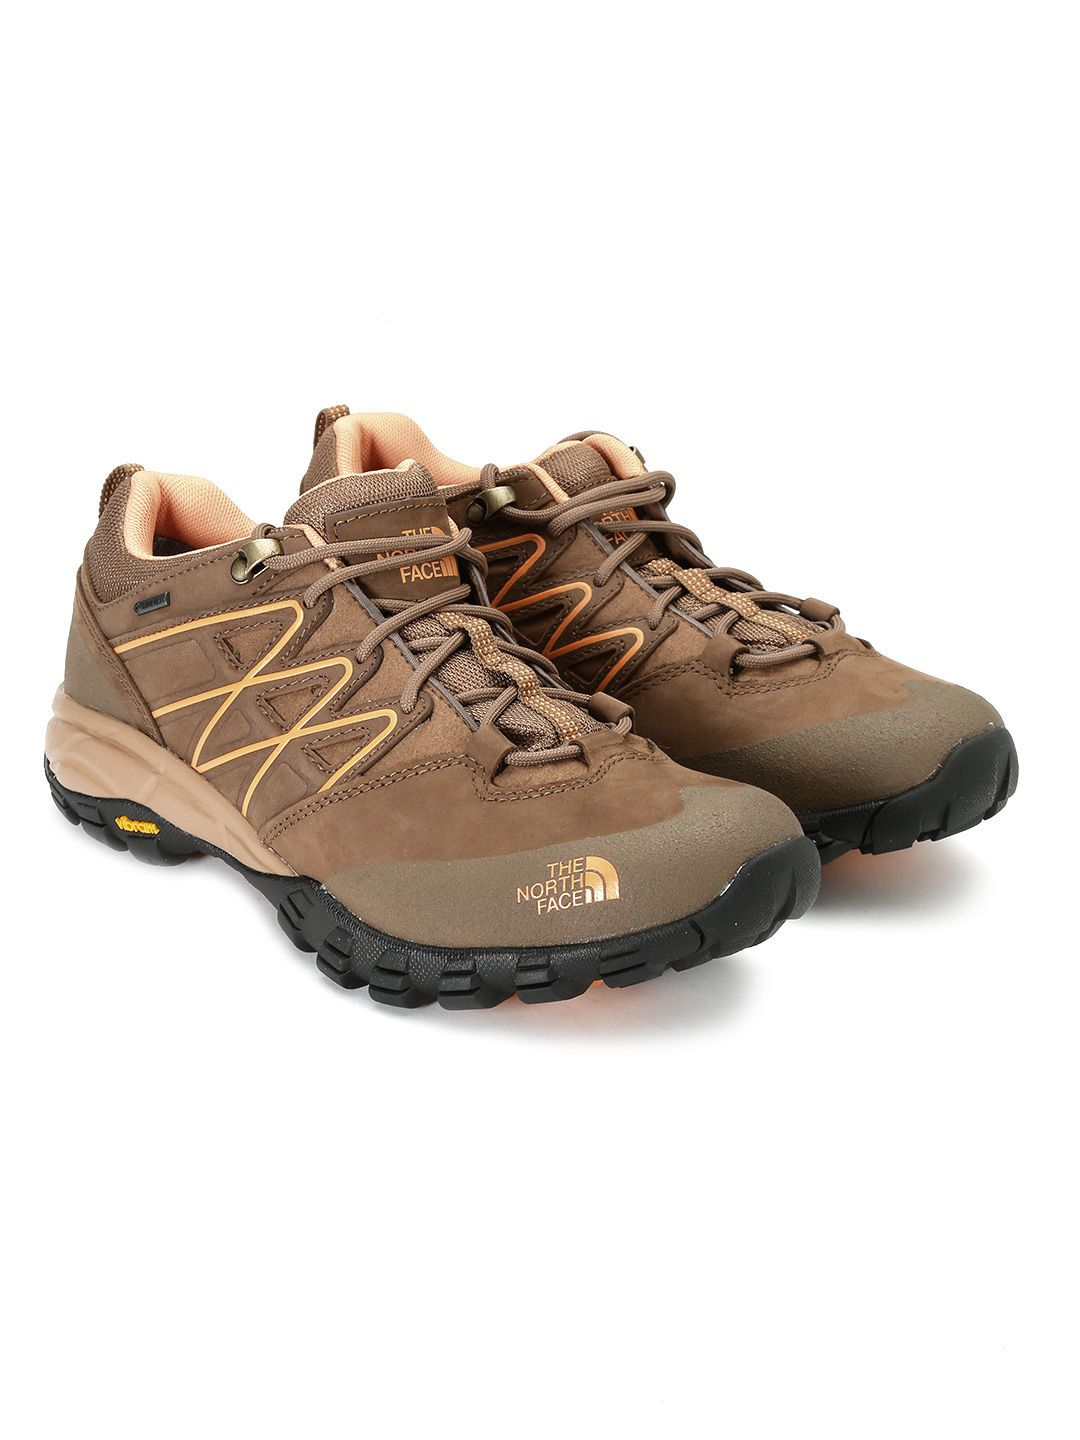 00e6b8900 The North Face Brown Hiking Shoes